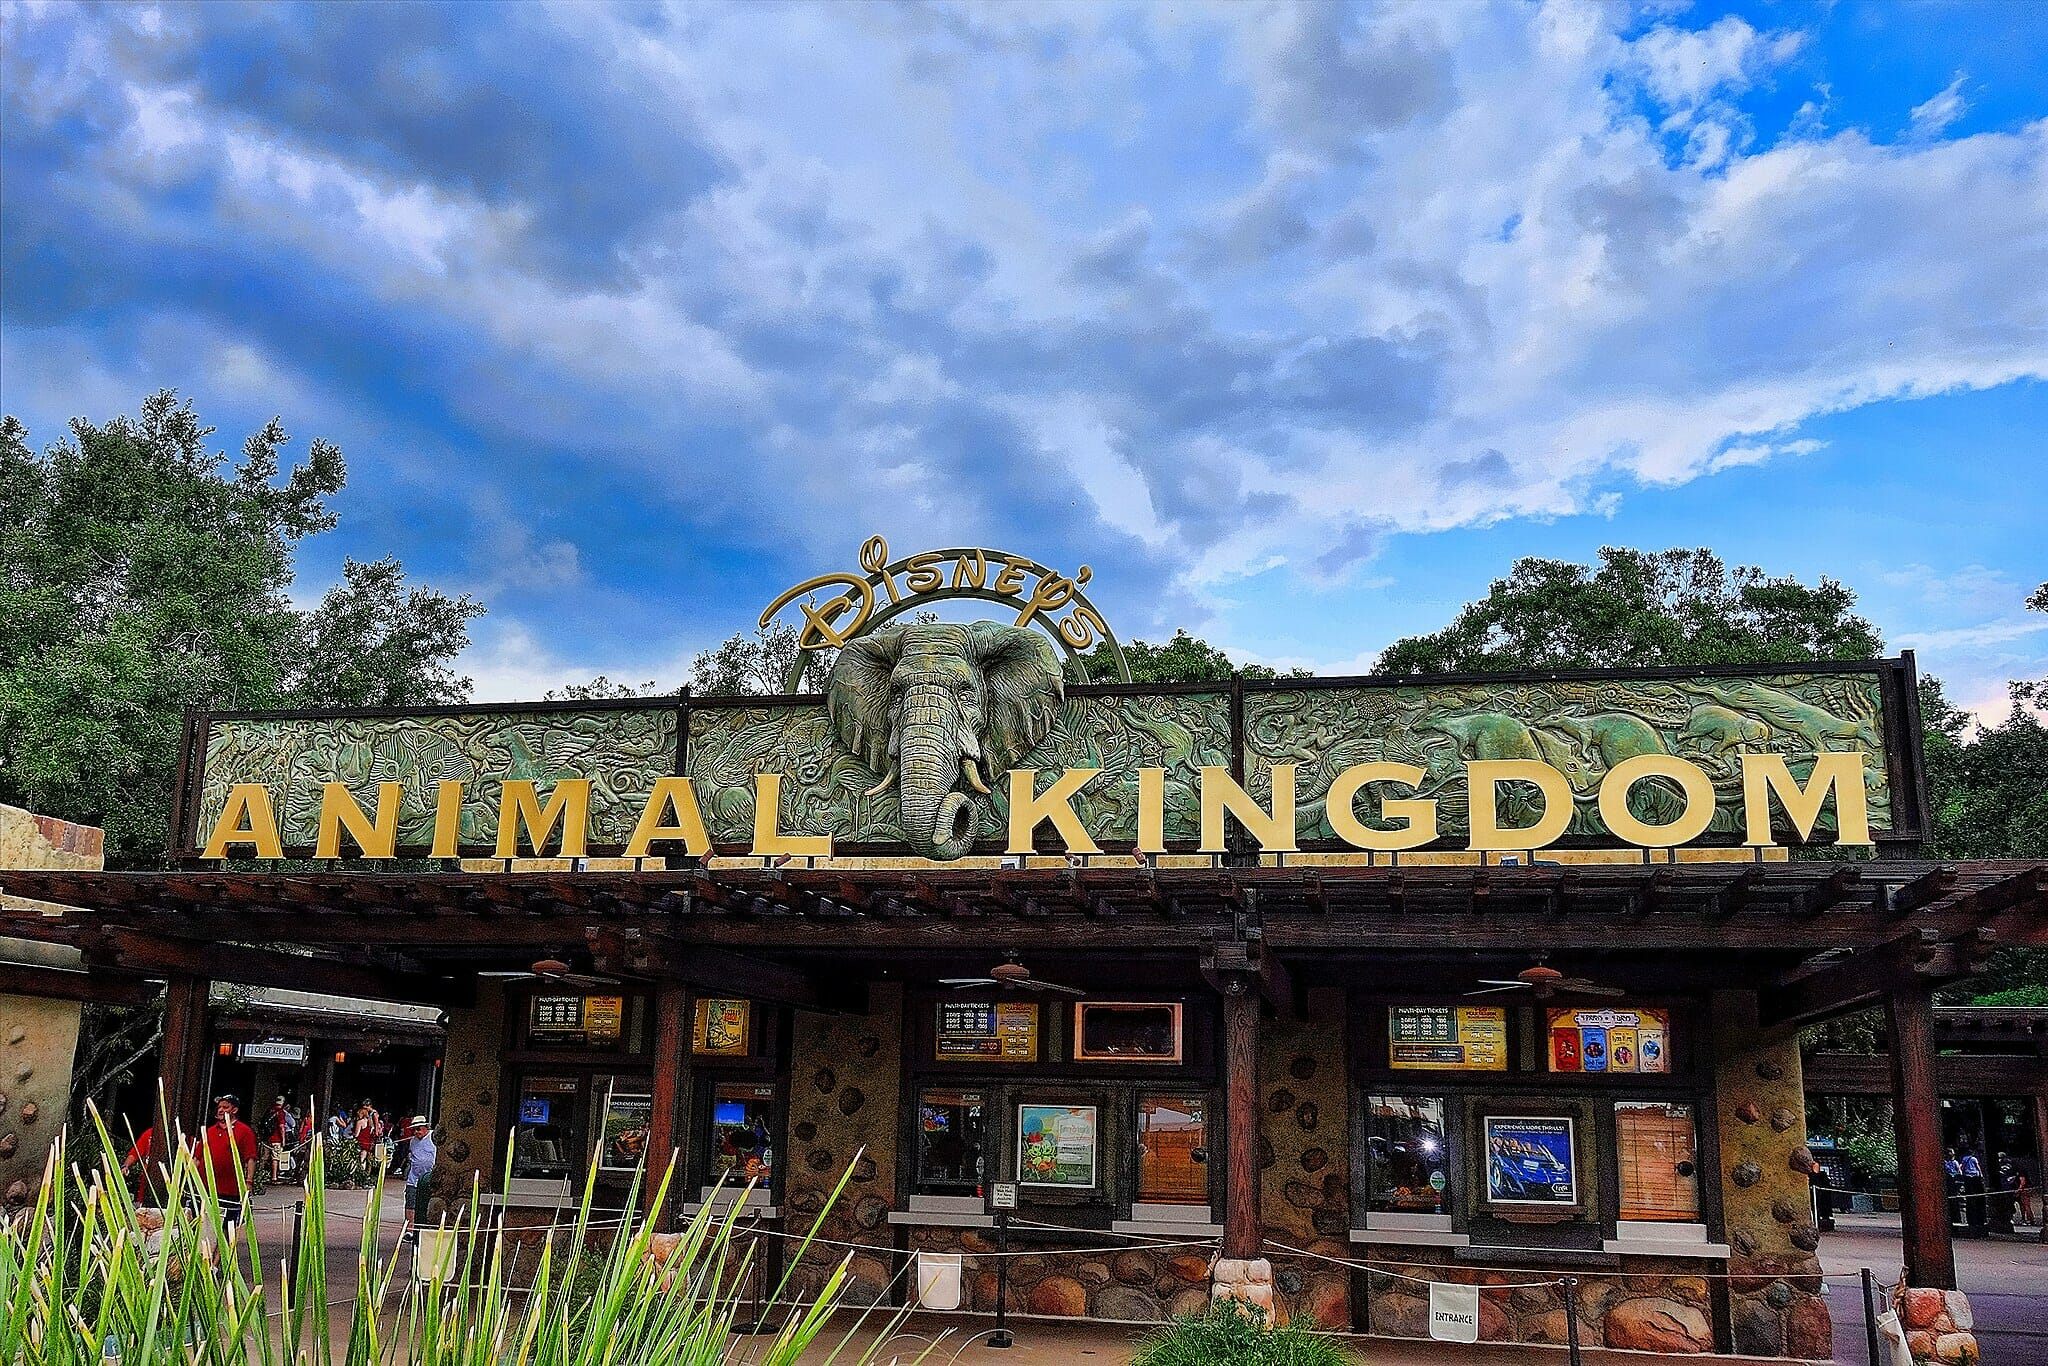 The entrance to Animal Kingdom made from gold letters with an elephant's head in the middle and blue sky in the background